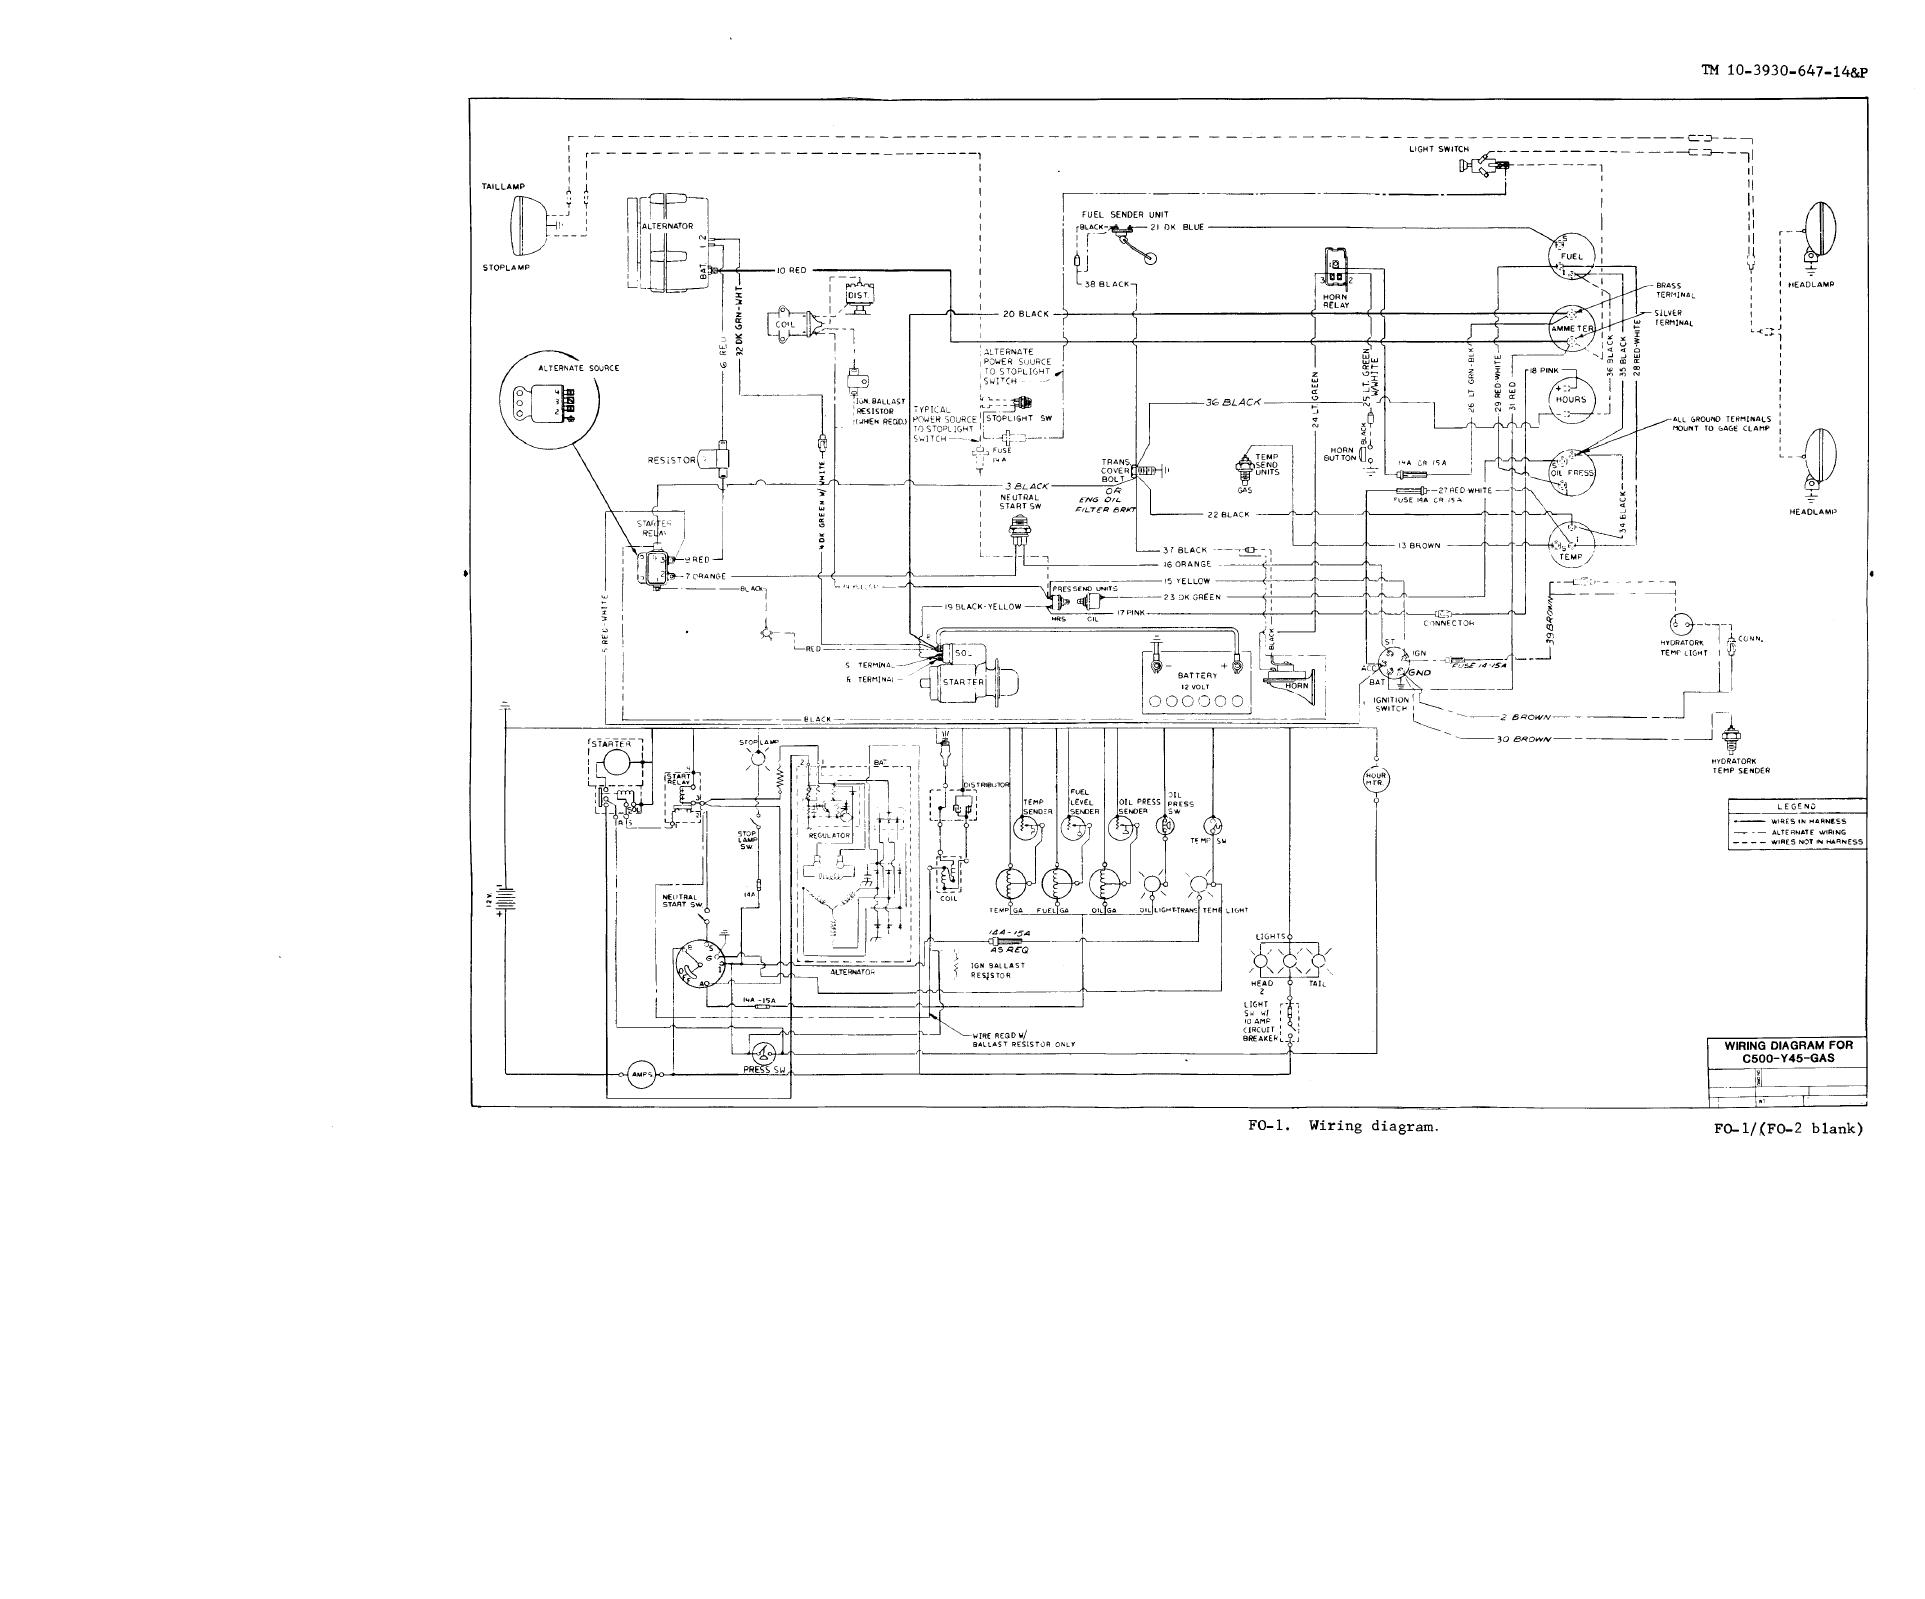 96 Altima Distributor Wiring Diagram Great Design Of Mallory Electronic Ignition Free Engine Image For User Unilite